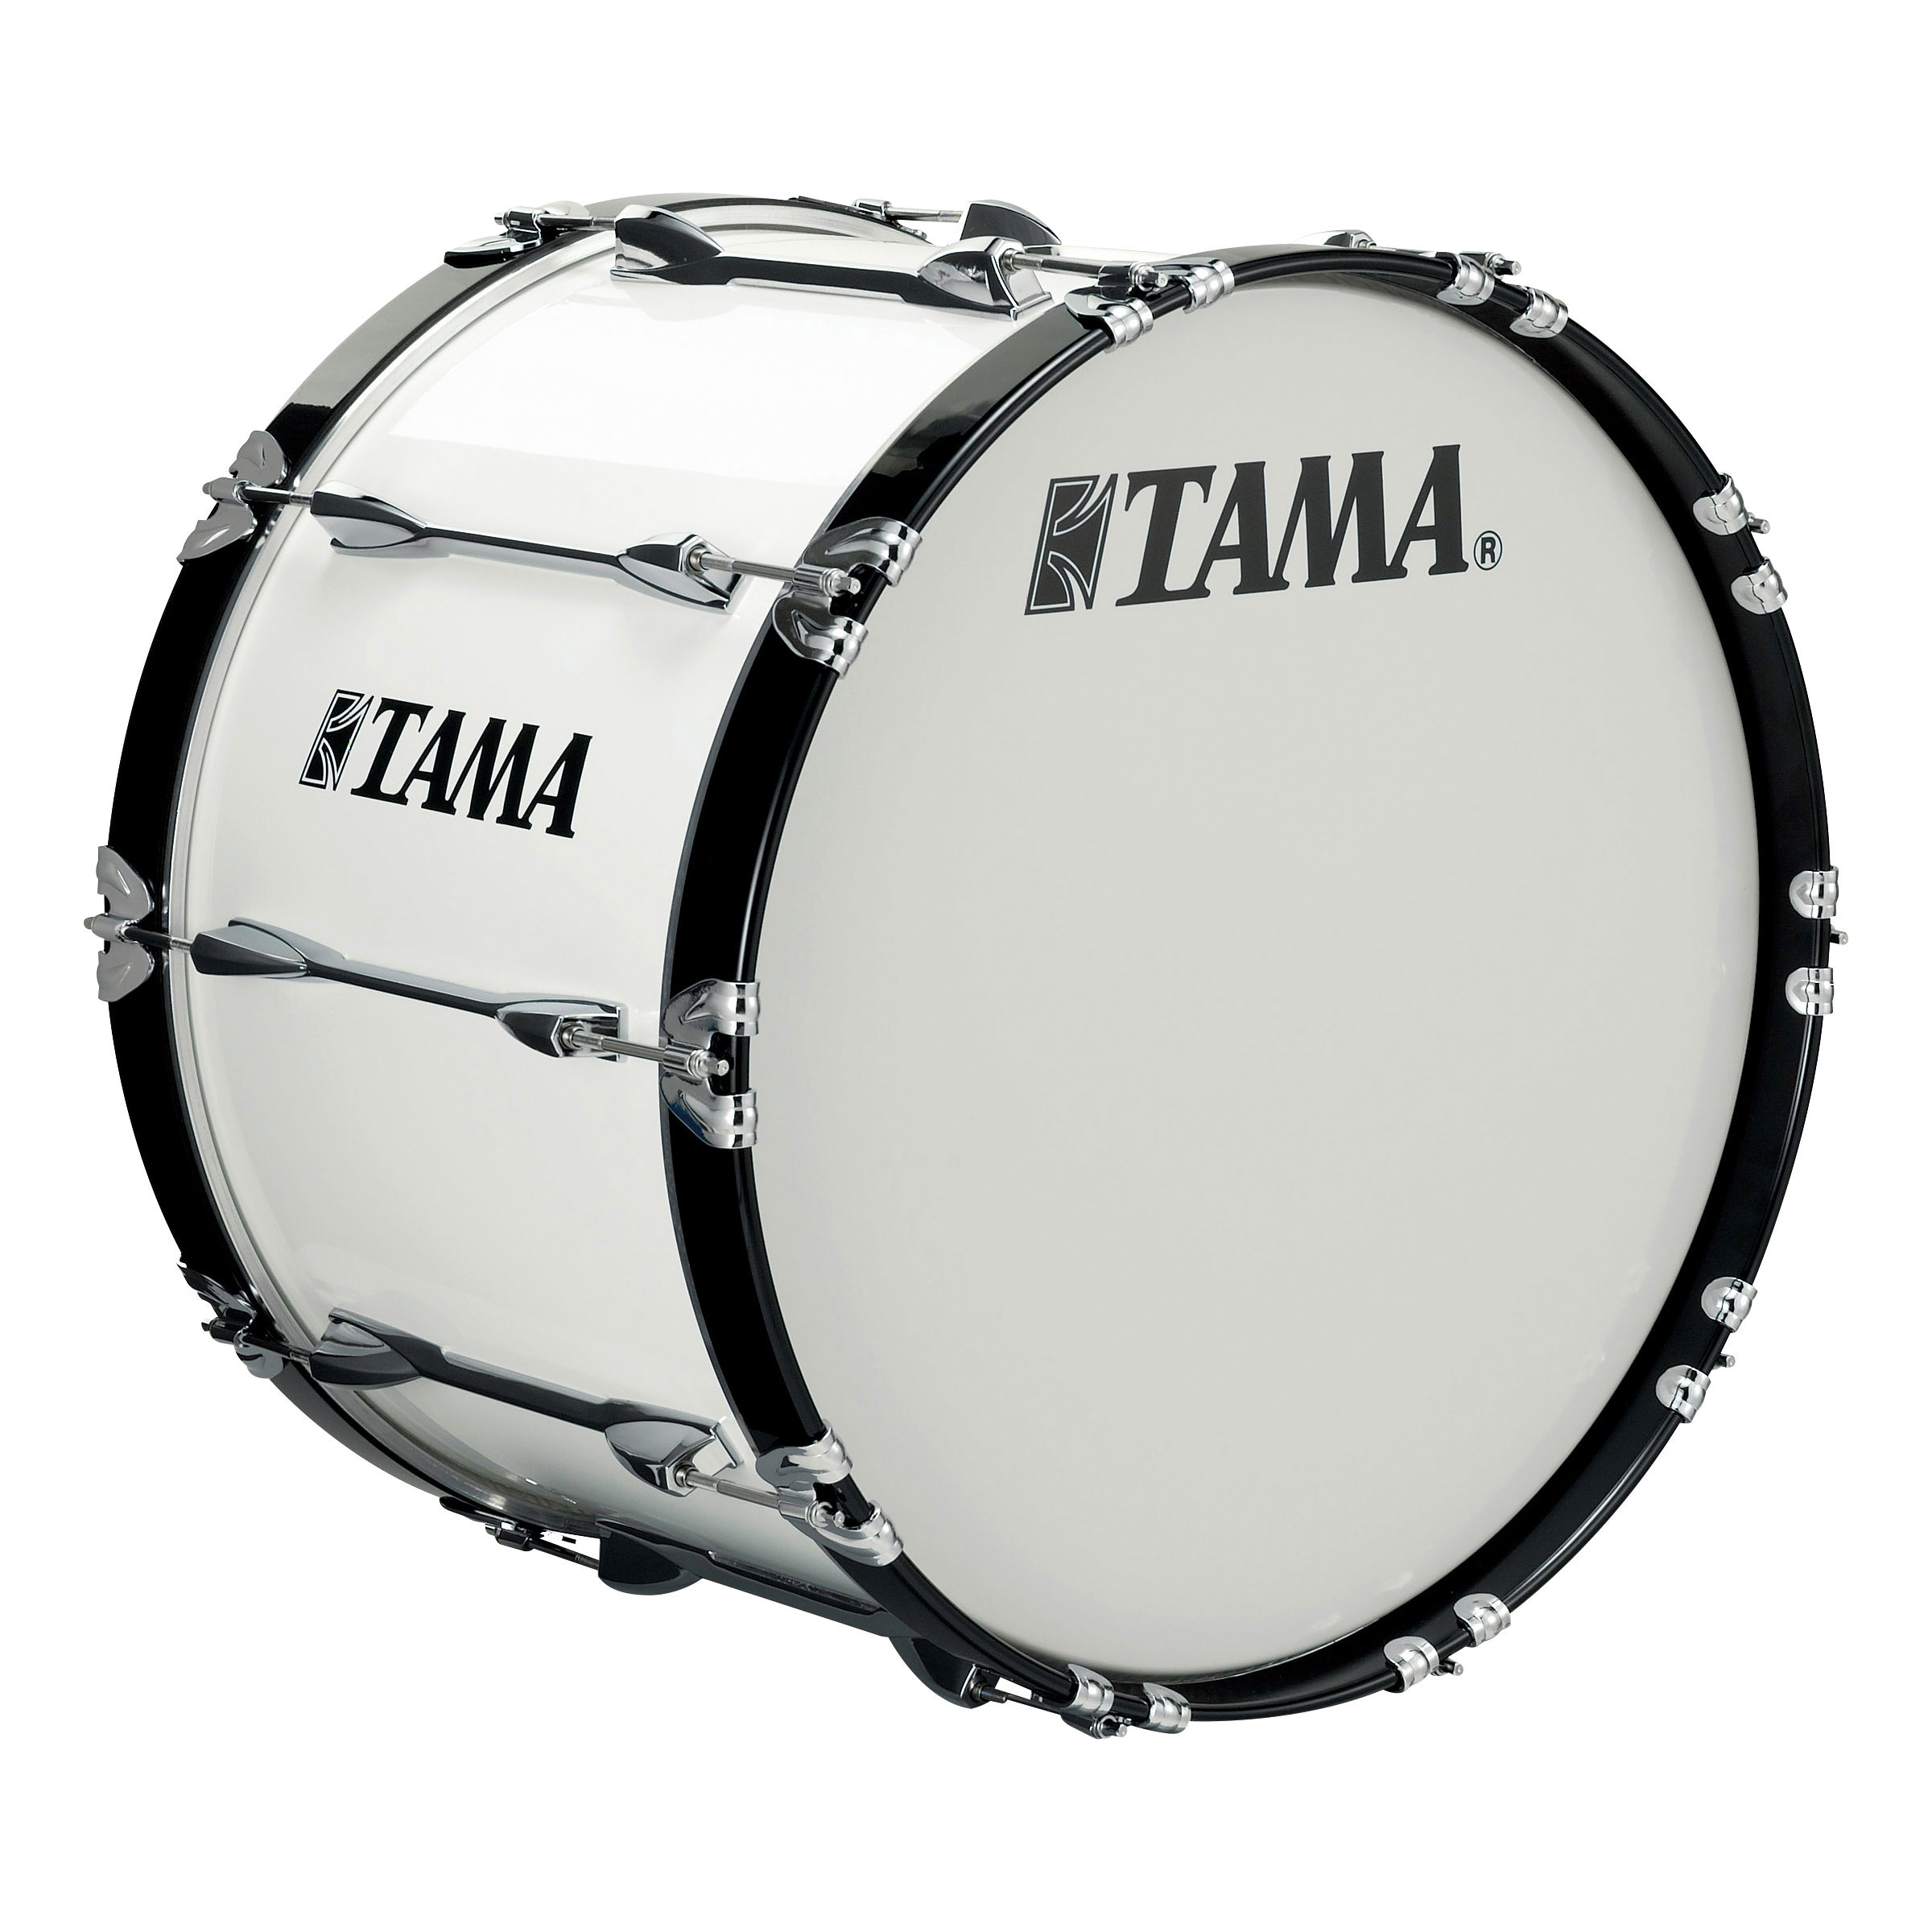 "Tama 26"" StarLight Marching Bass Drum in Sugar White Wrap"